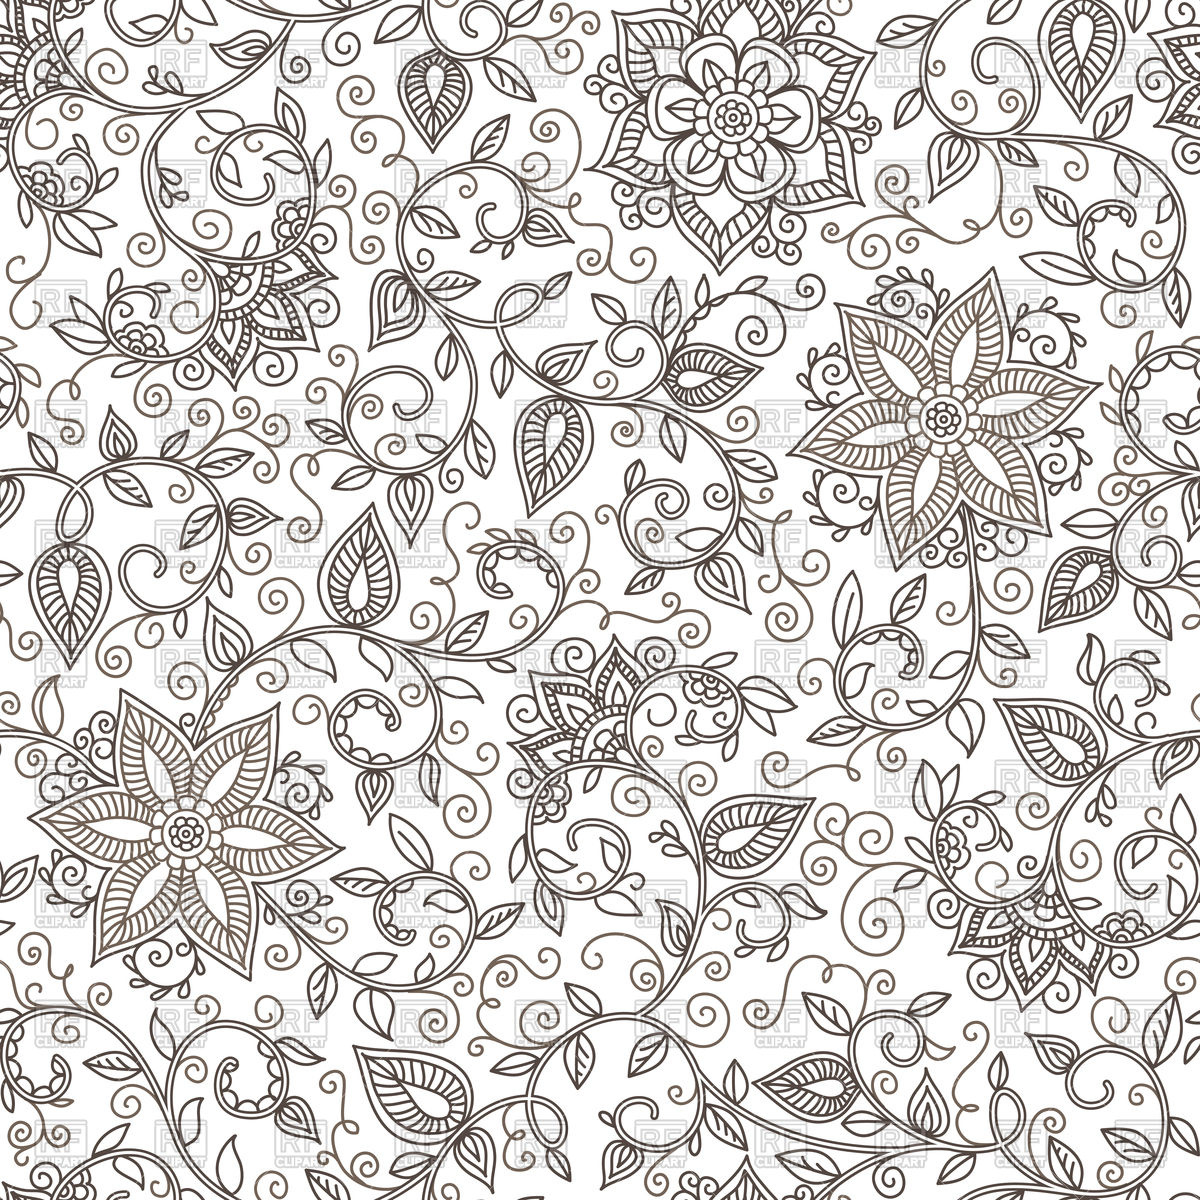 1200x1200 Seamless Floral Pattern Of Spirals, Swirls And Doodles Vector